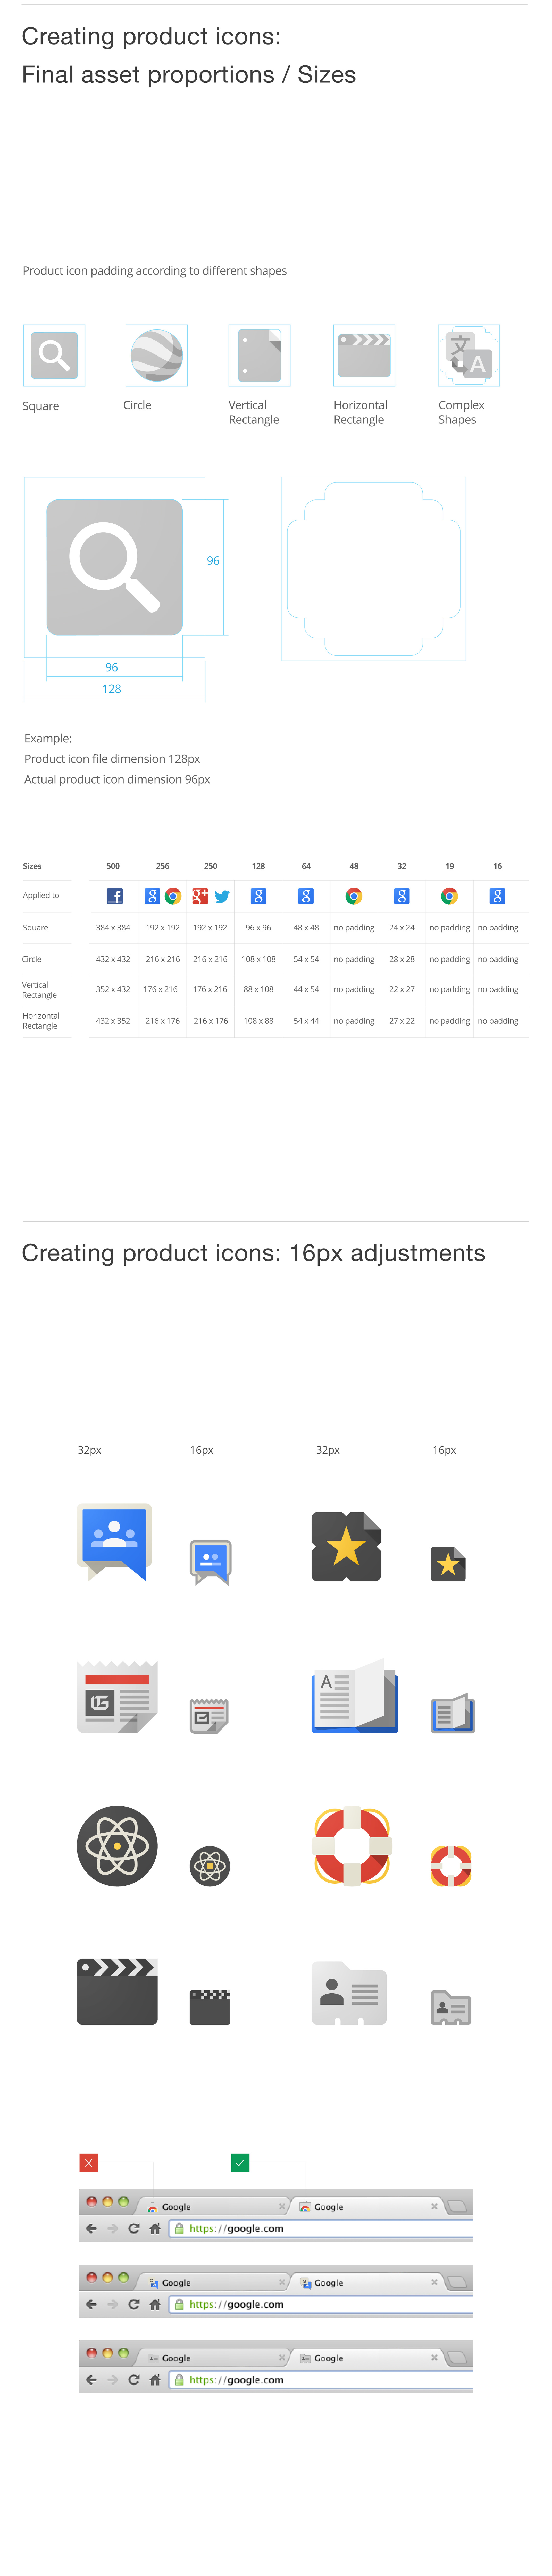 Google: Visual Assets Guidelines